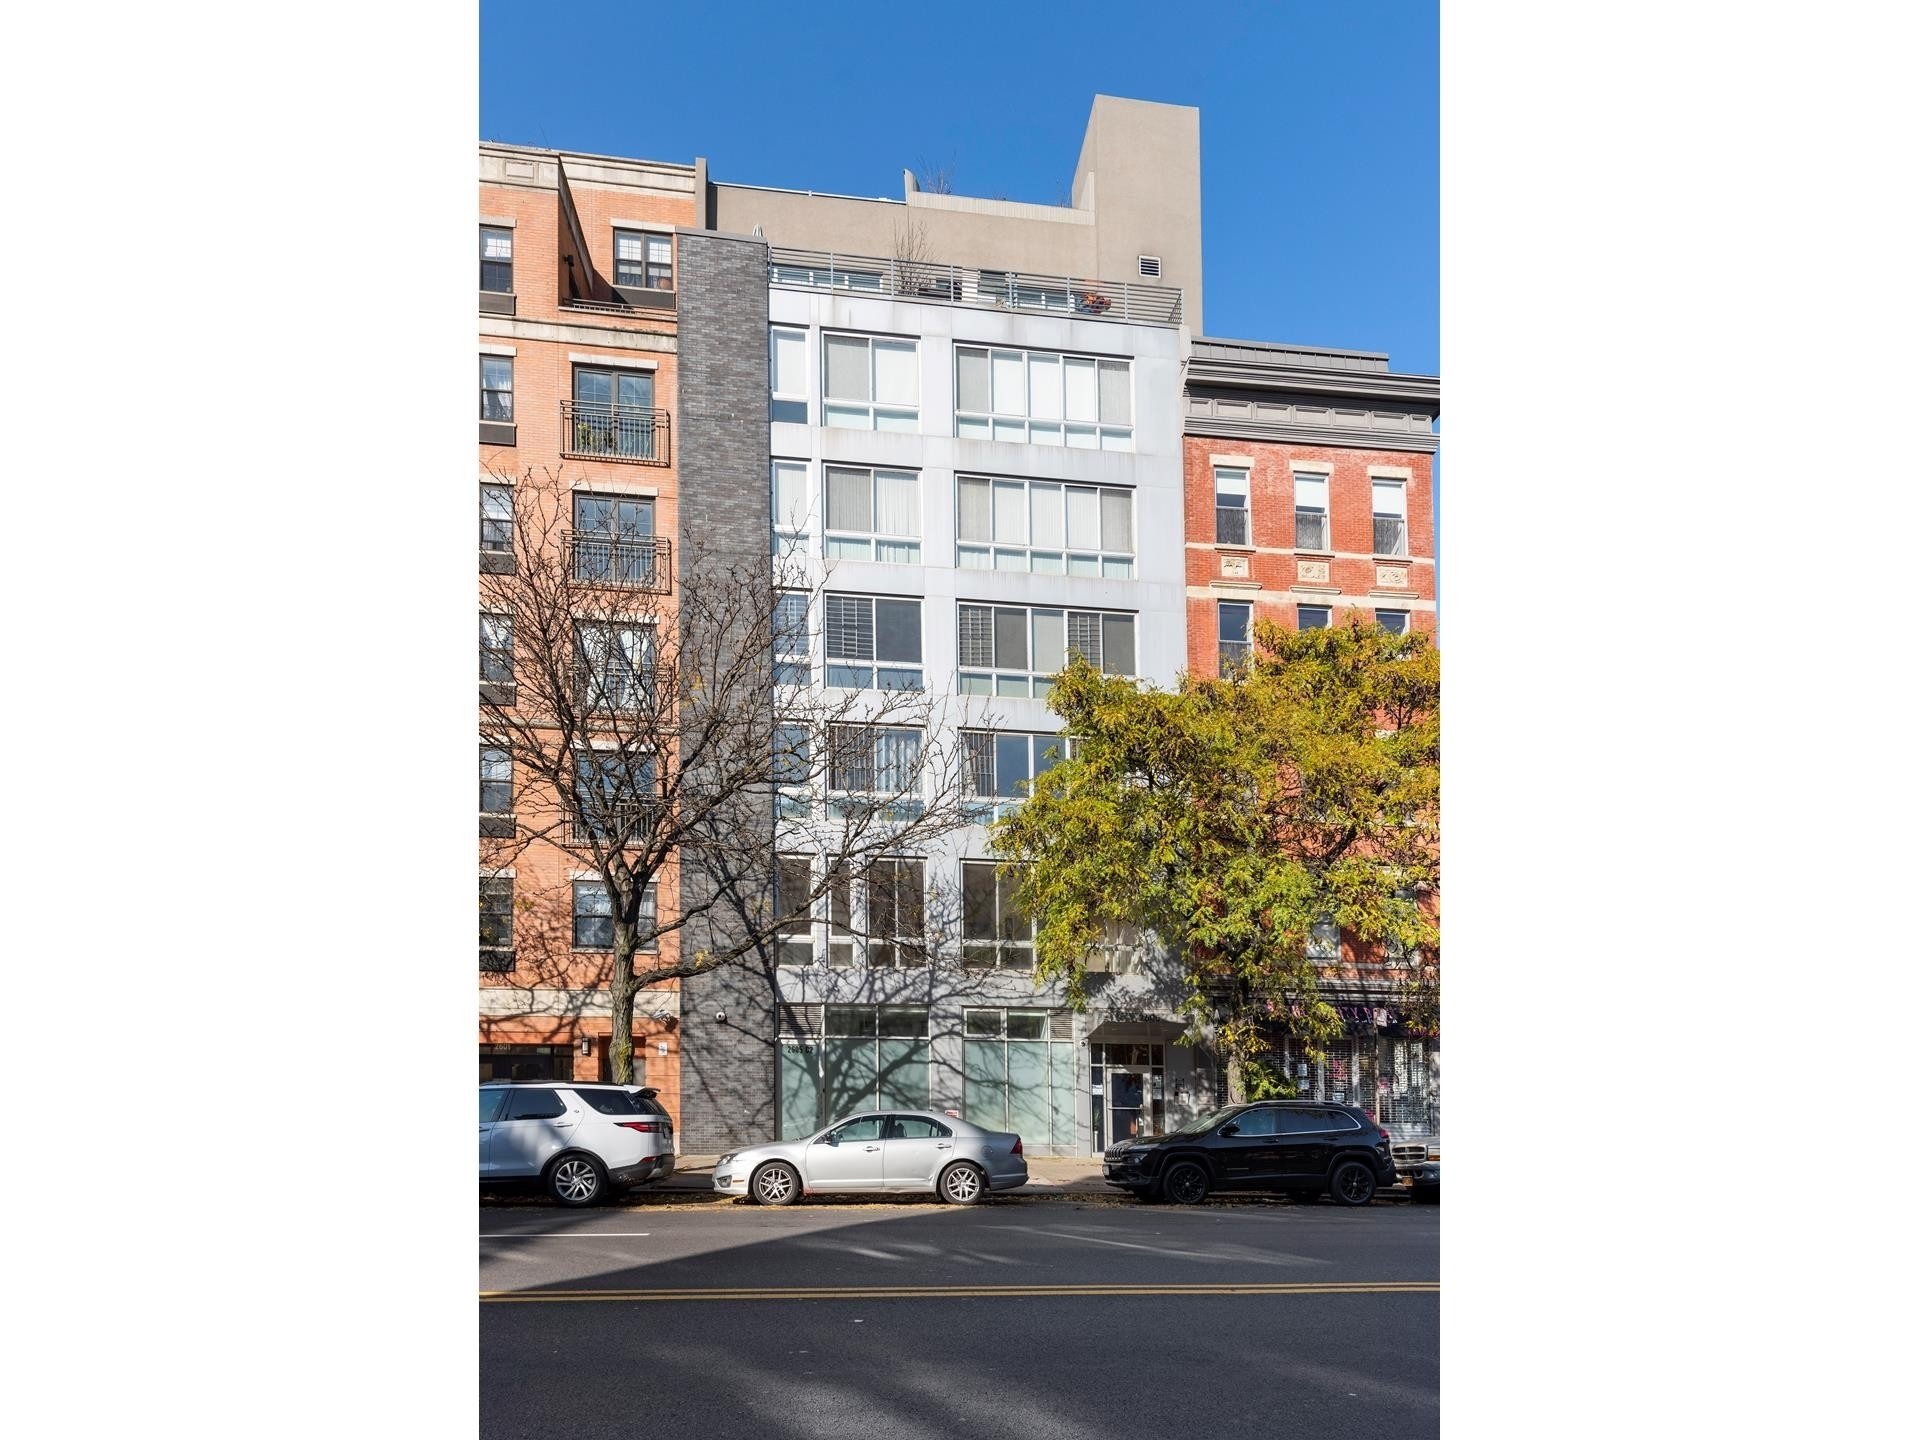 13. Condominiums for Sale at One Striver's Row, 2605 Frederick Douglass Boulevard, 4B Central Harlem, New York, NY 10030